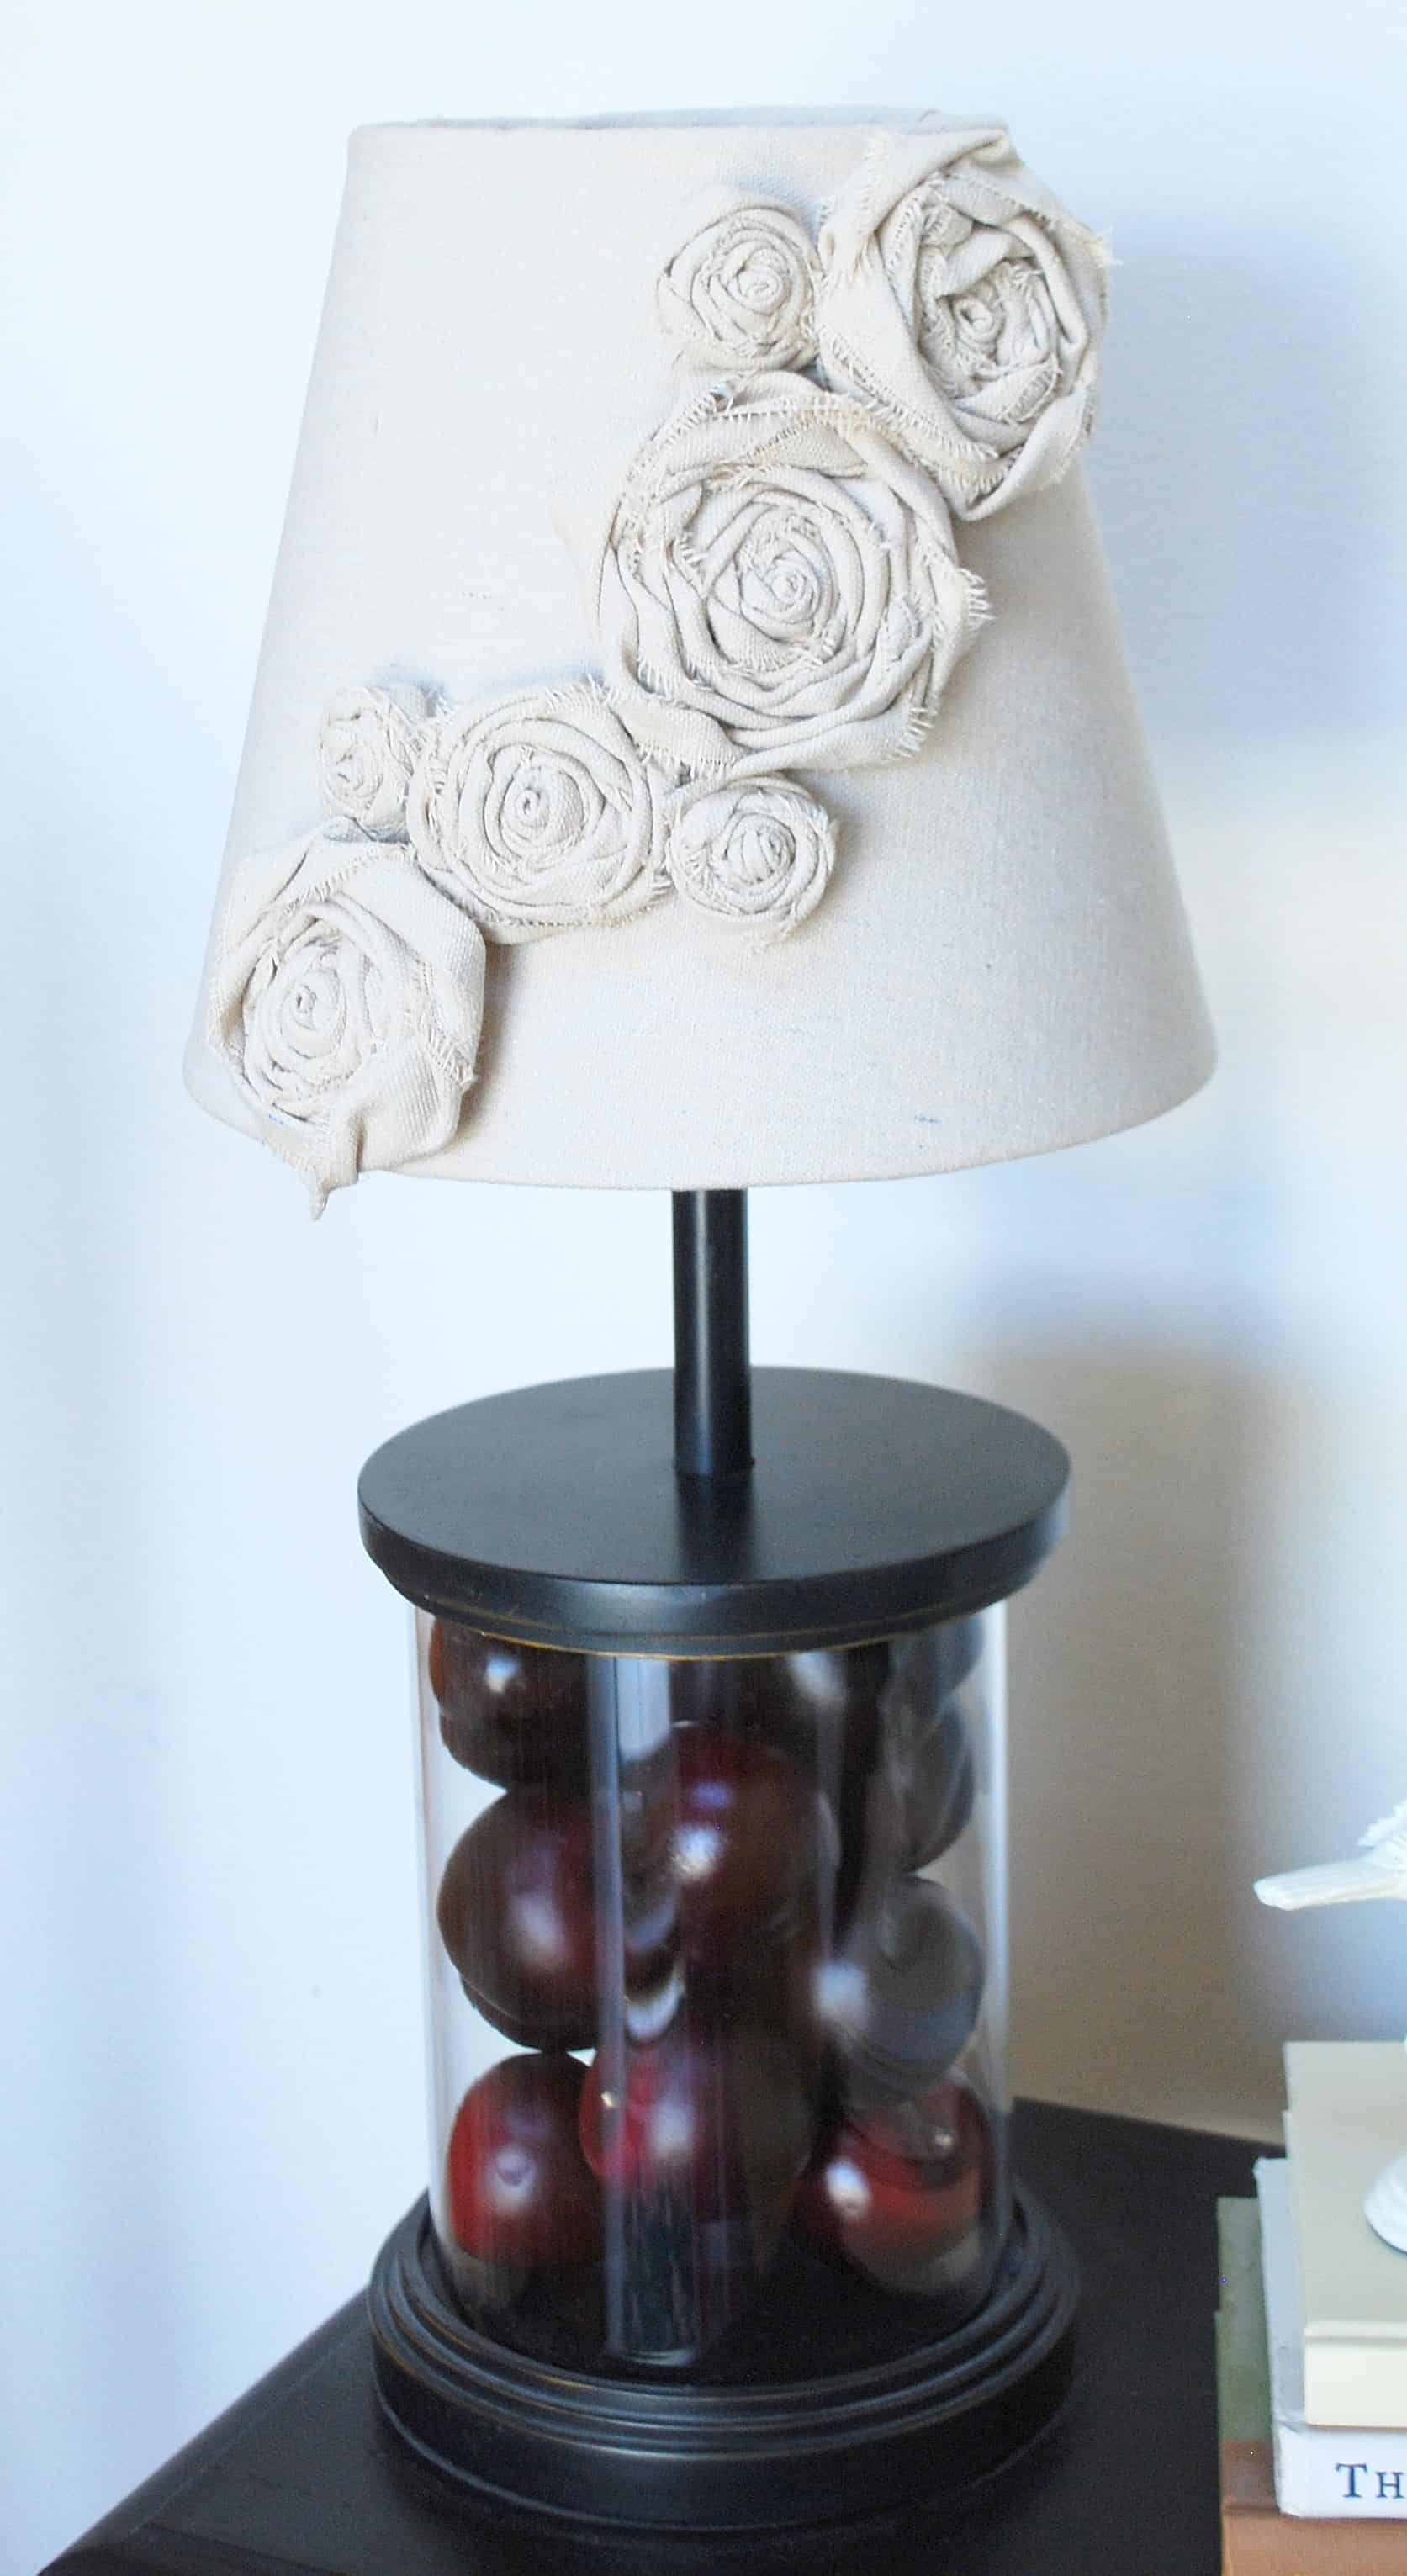 Diy lampshade redo canvas rosettes - Diy lamp shade ...